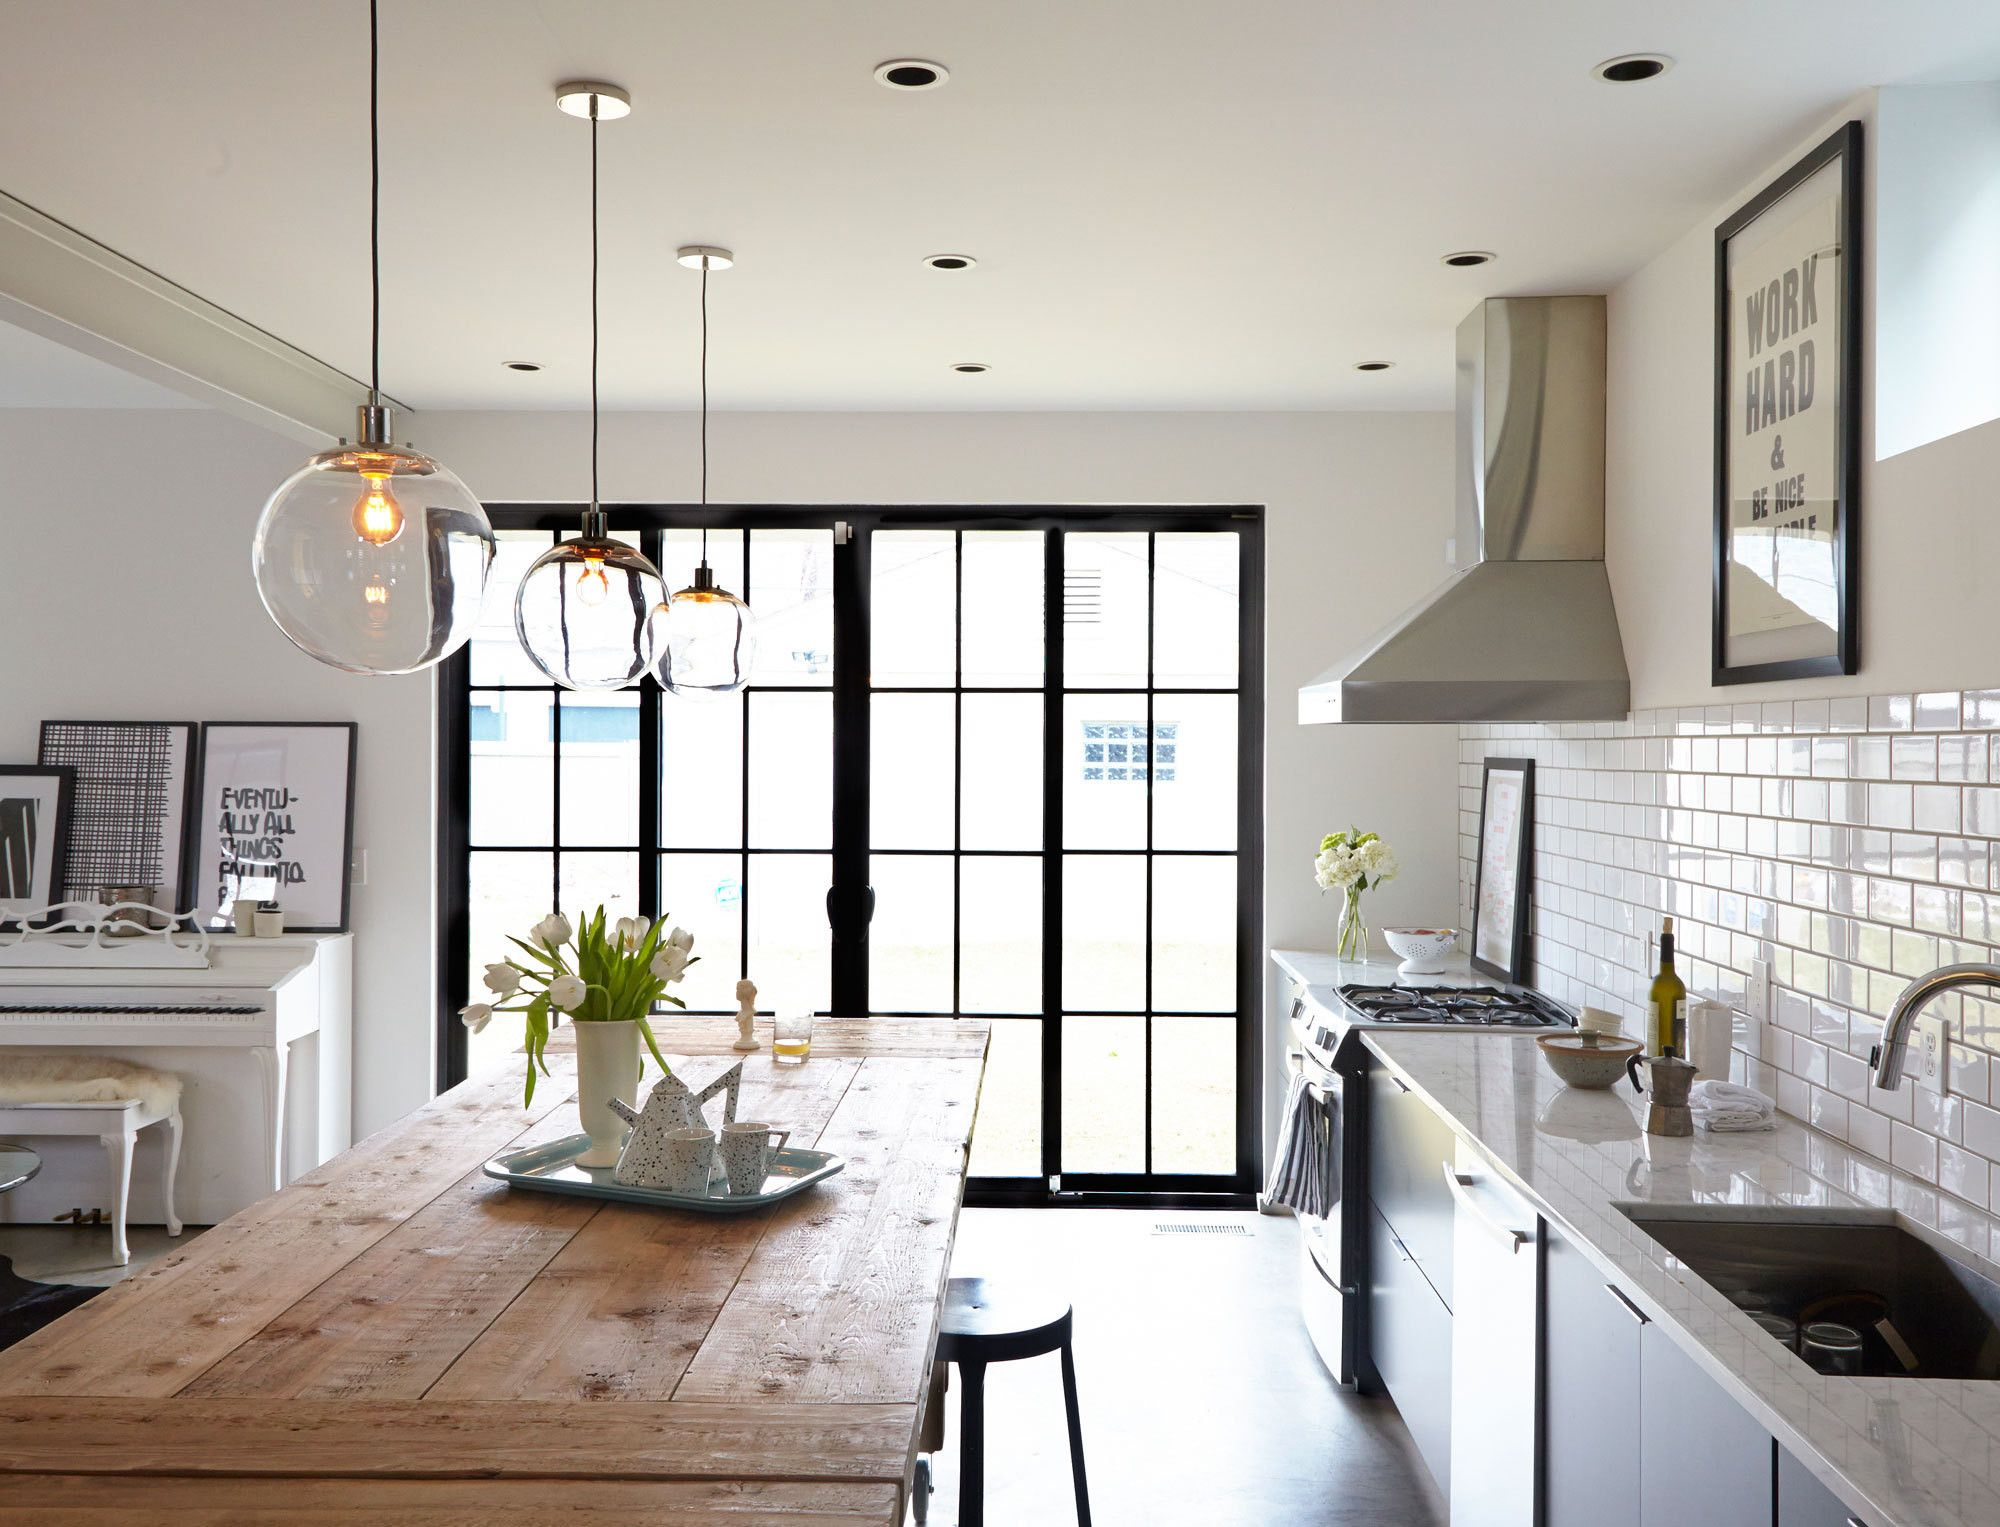 How High To Hang Pendant Lights Over Kitchen Sink